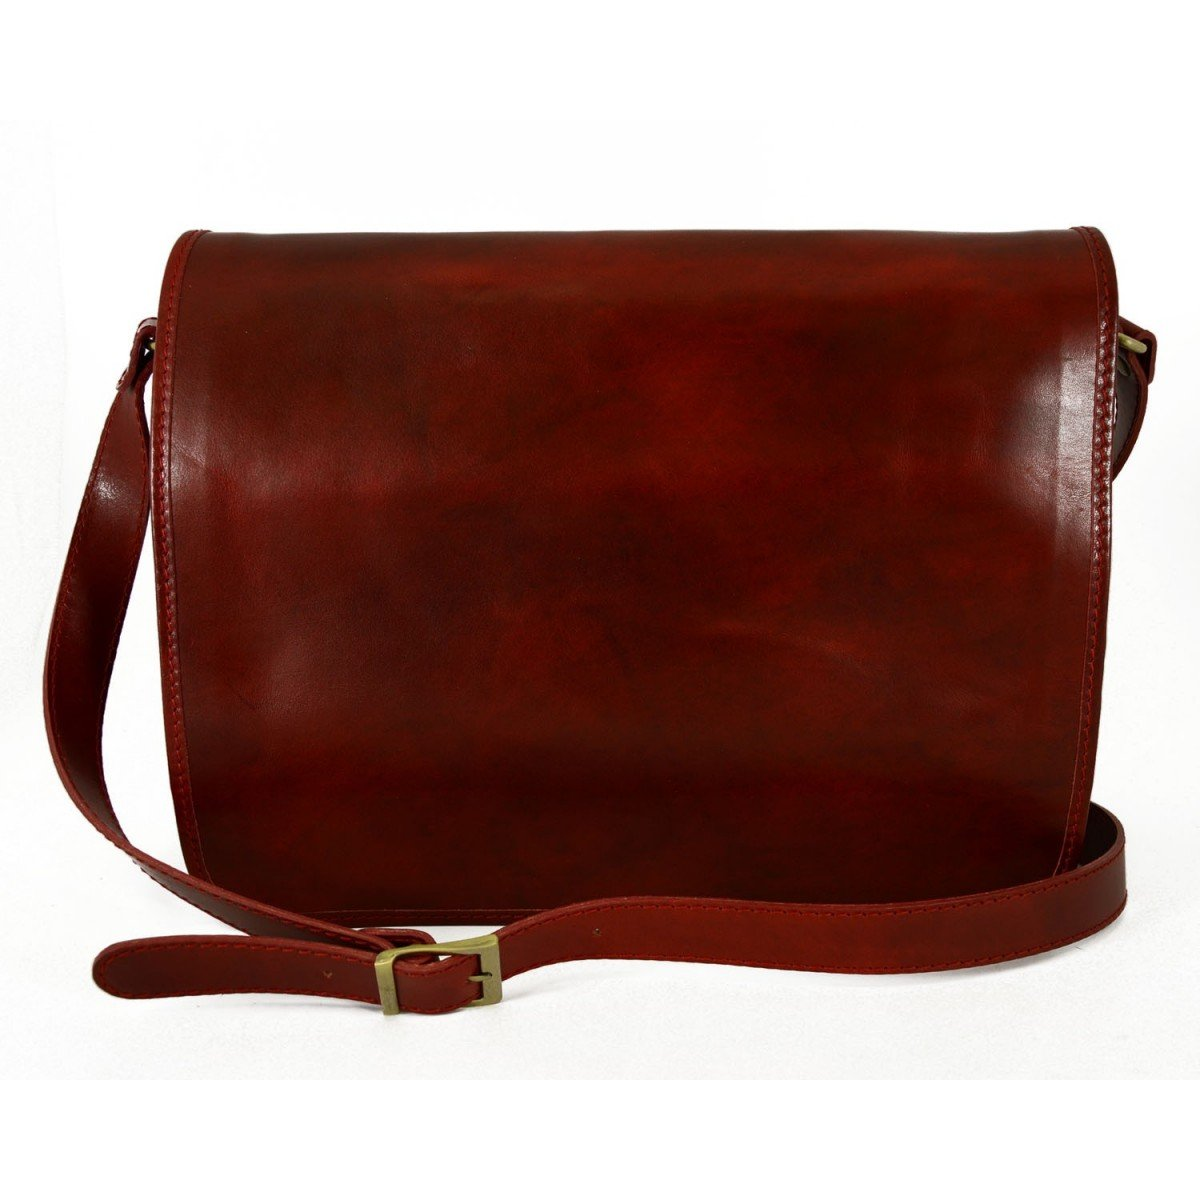 Made In Italy Leather Messenger Bag Color Red - Man Bag   B01DZ8U756